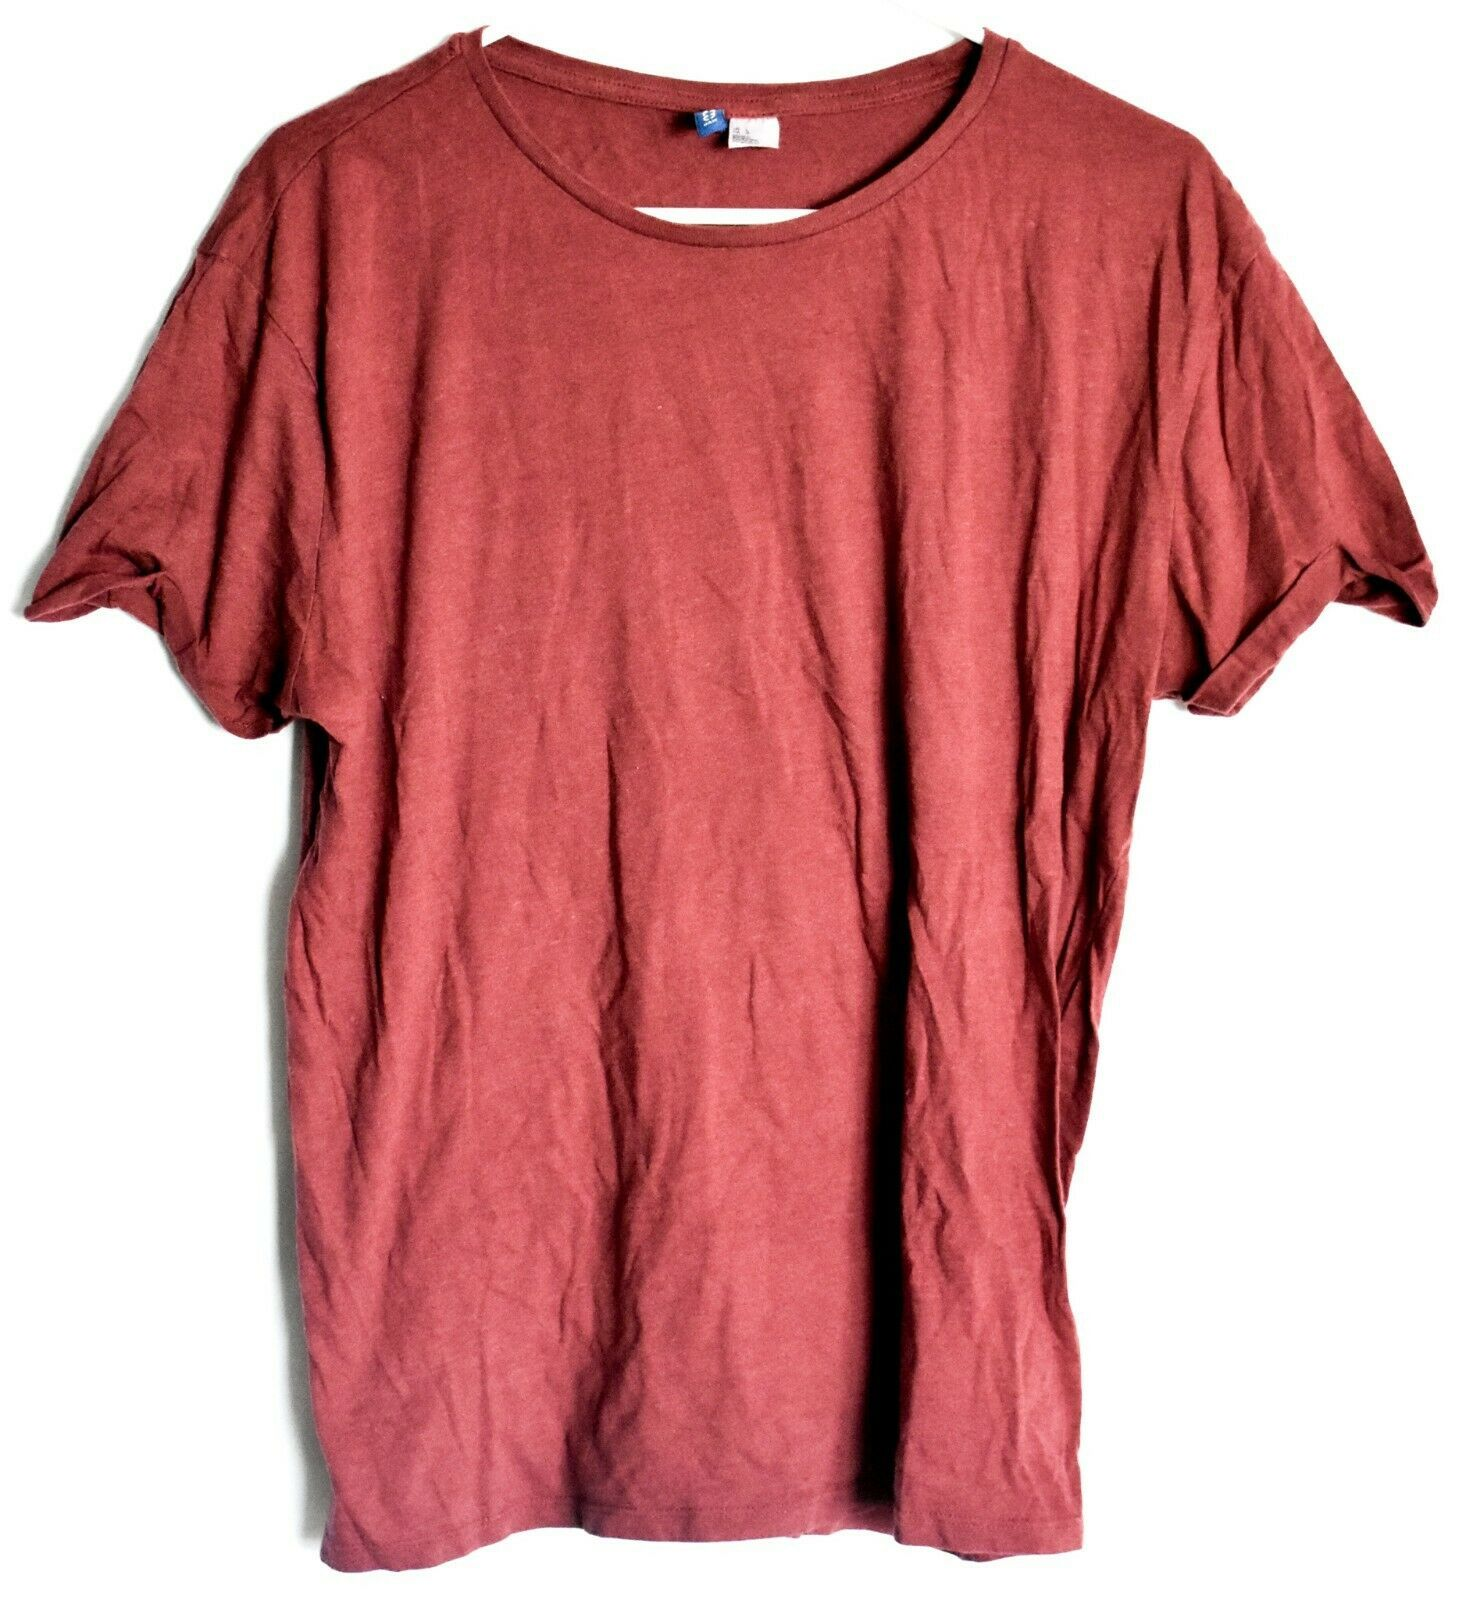 Divided by H&M Men's Heathered Maroon Crew Neck Short Sleeve T-Shirt Size L